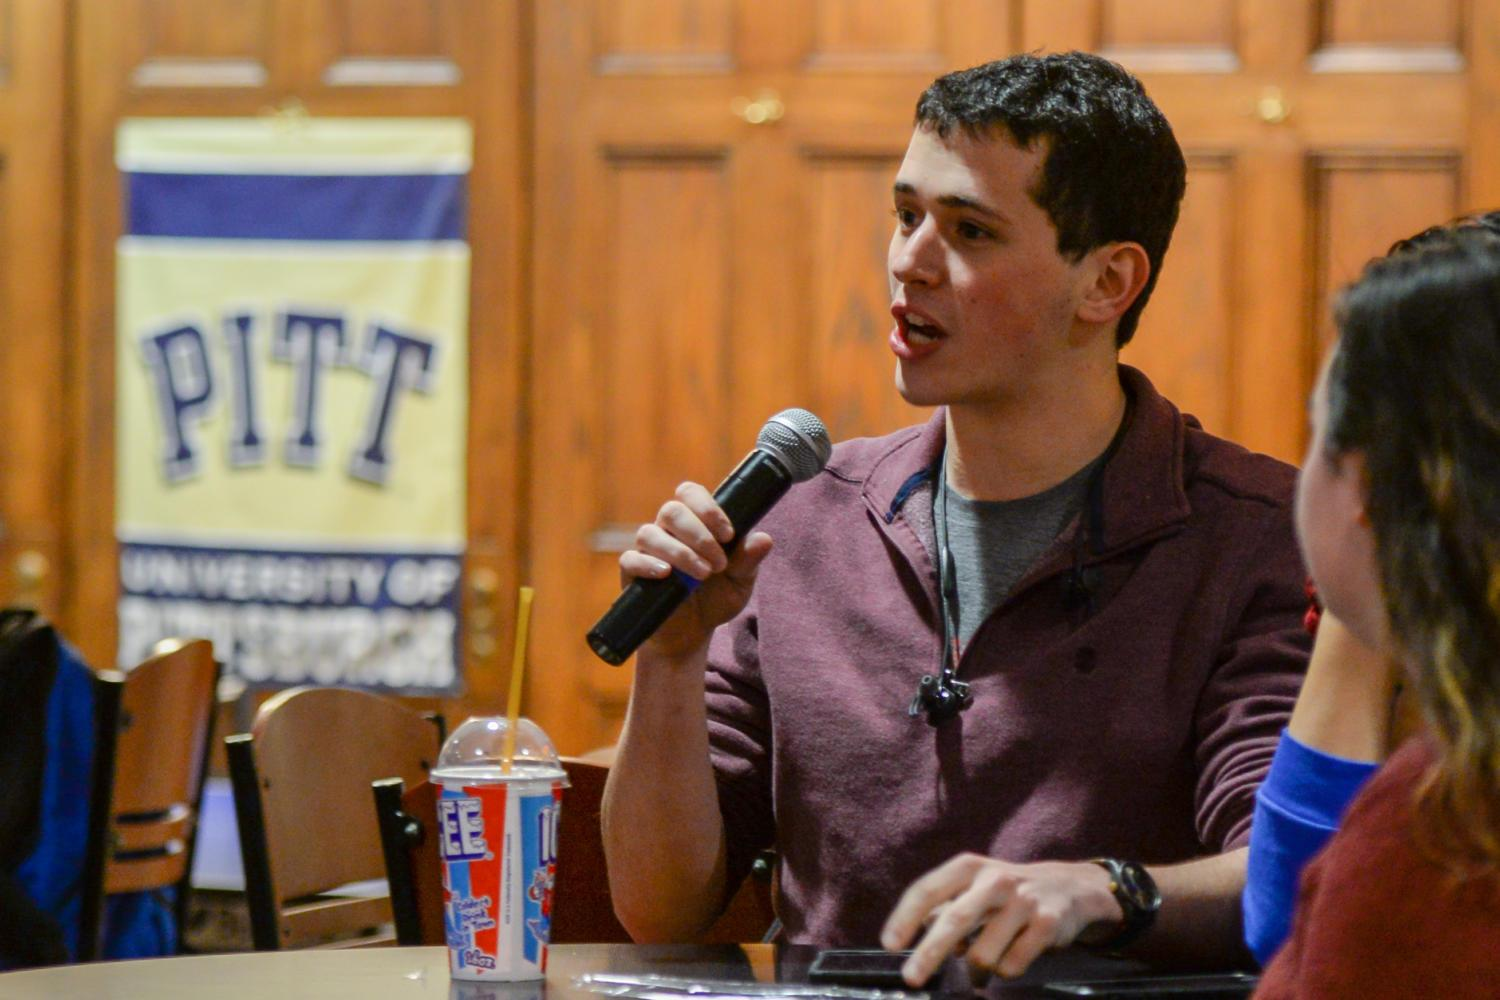 Pitt Program Council Special Events Director Zach Linn discusses upcoming events during SGB's first meeting of the year. (Photo by Sarah Cutshall | Staff Photographer)